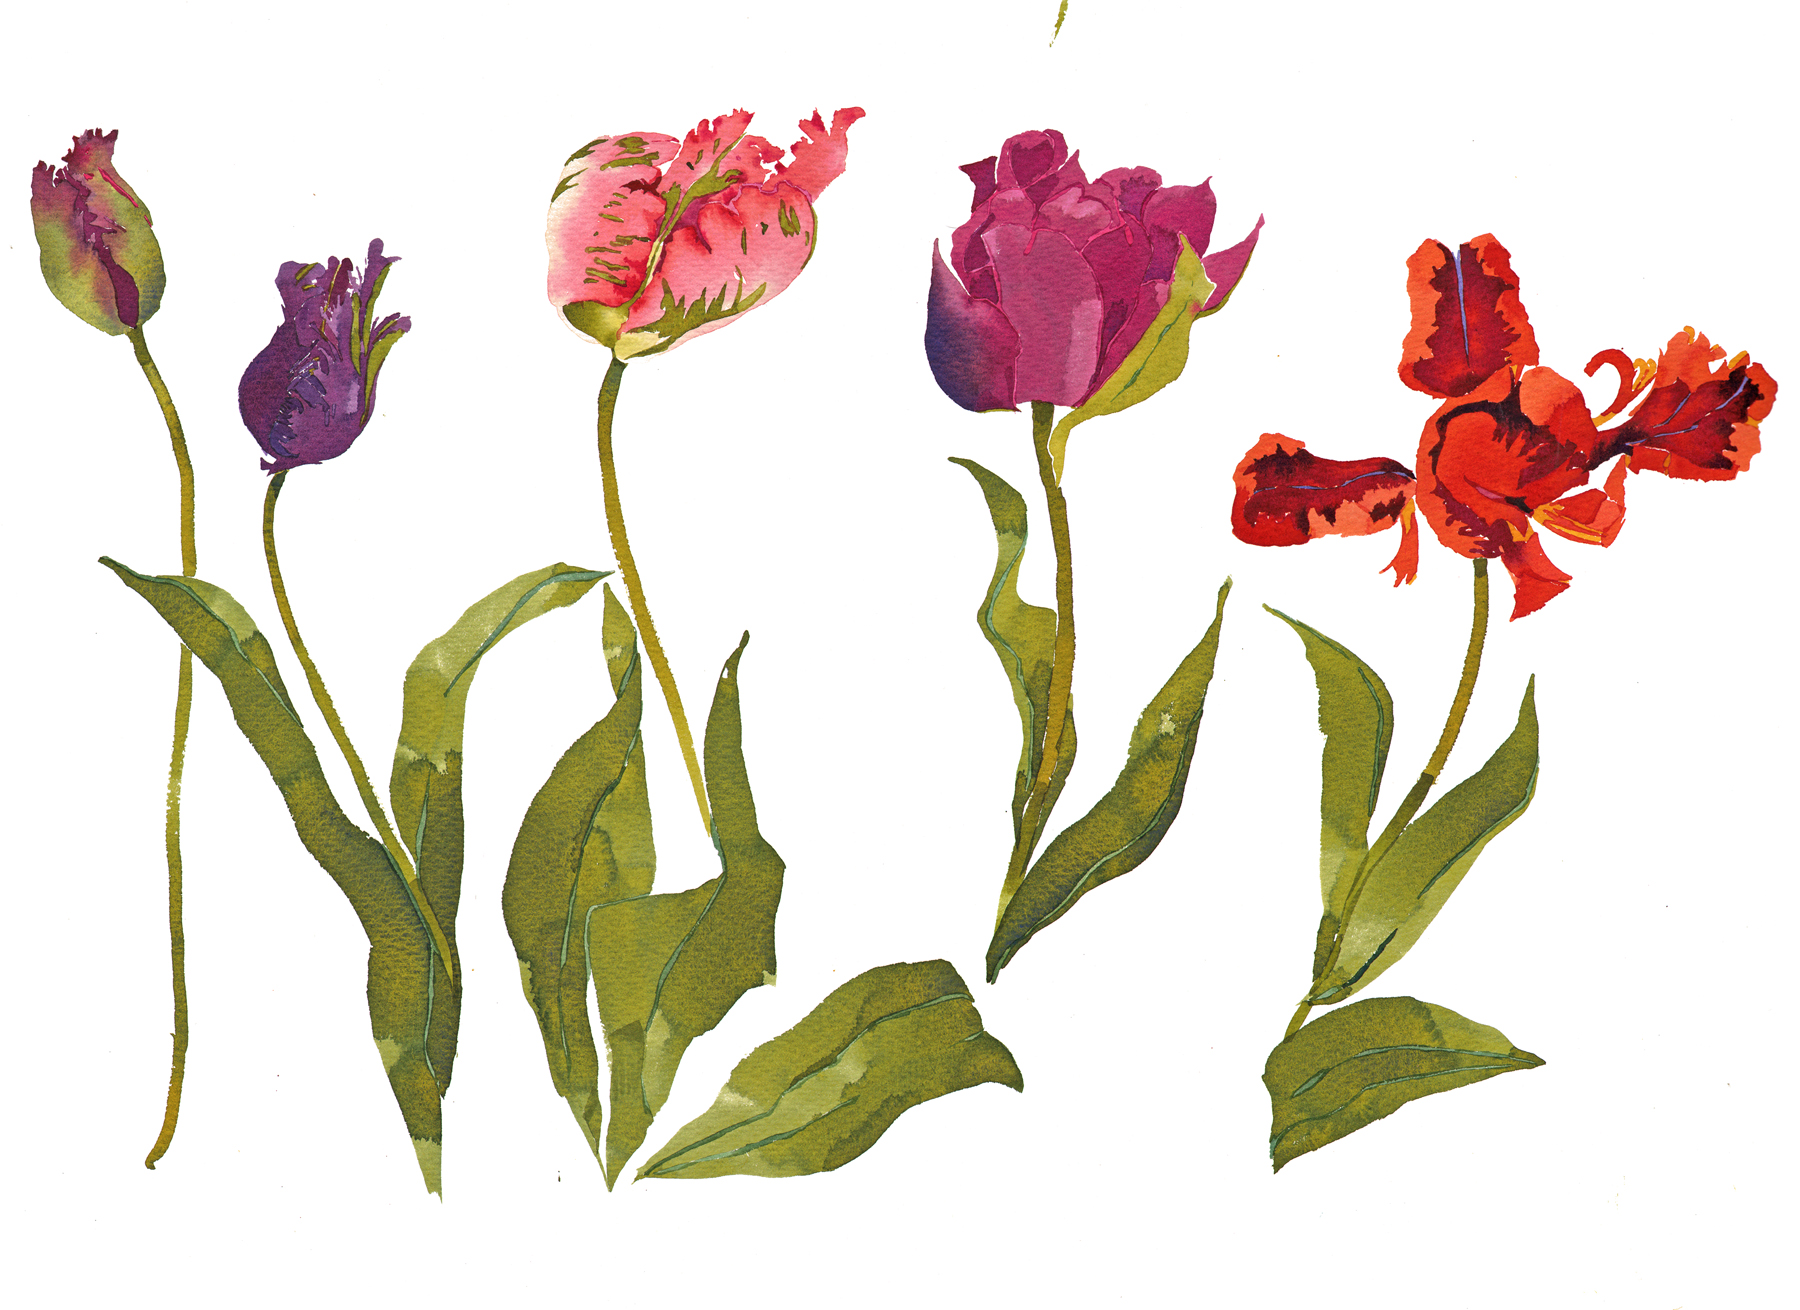 Five Tulips image